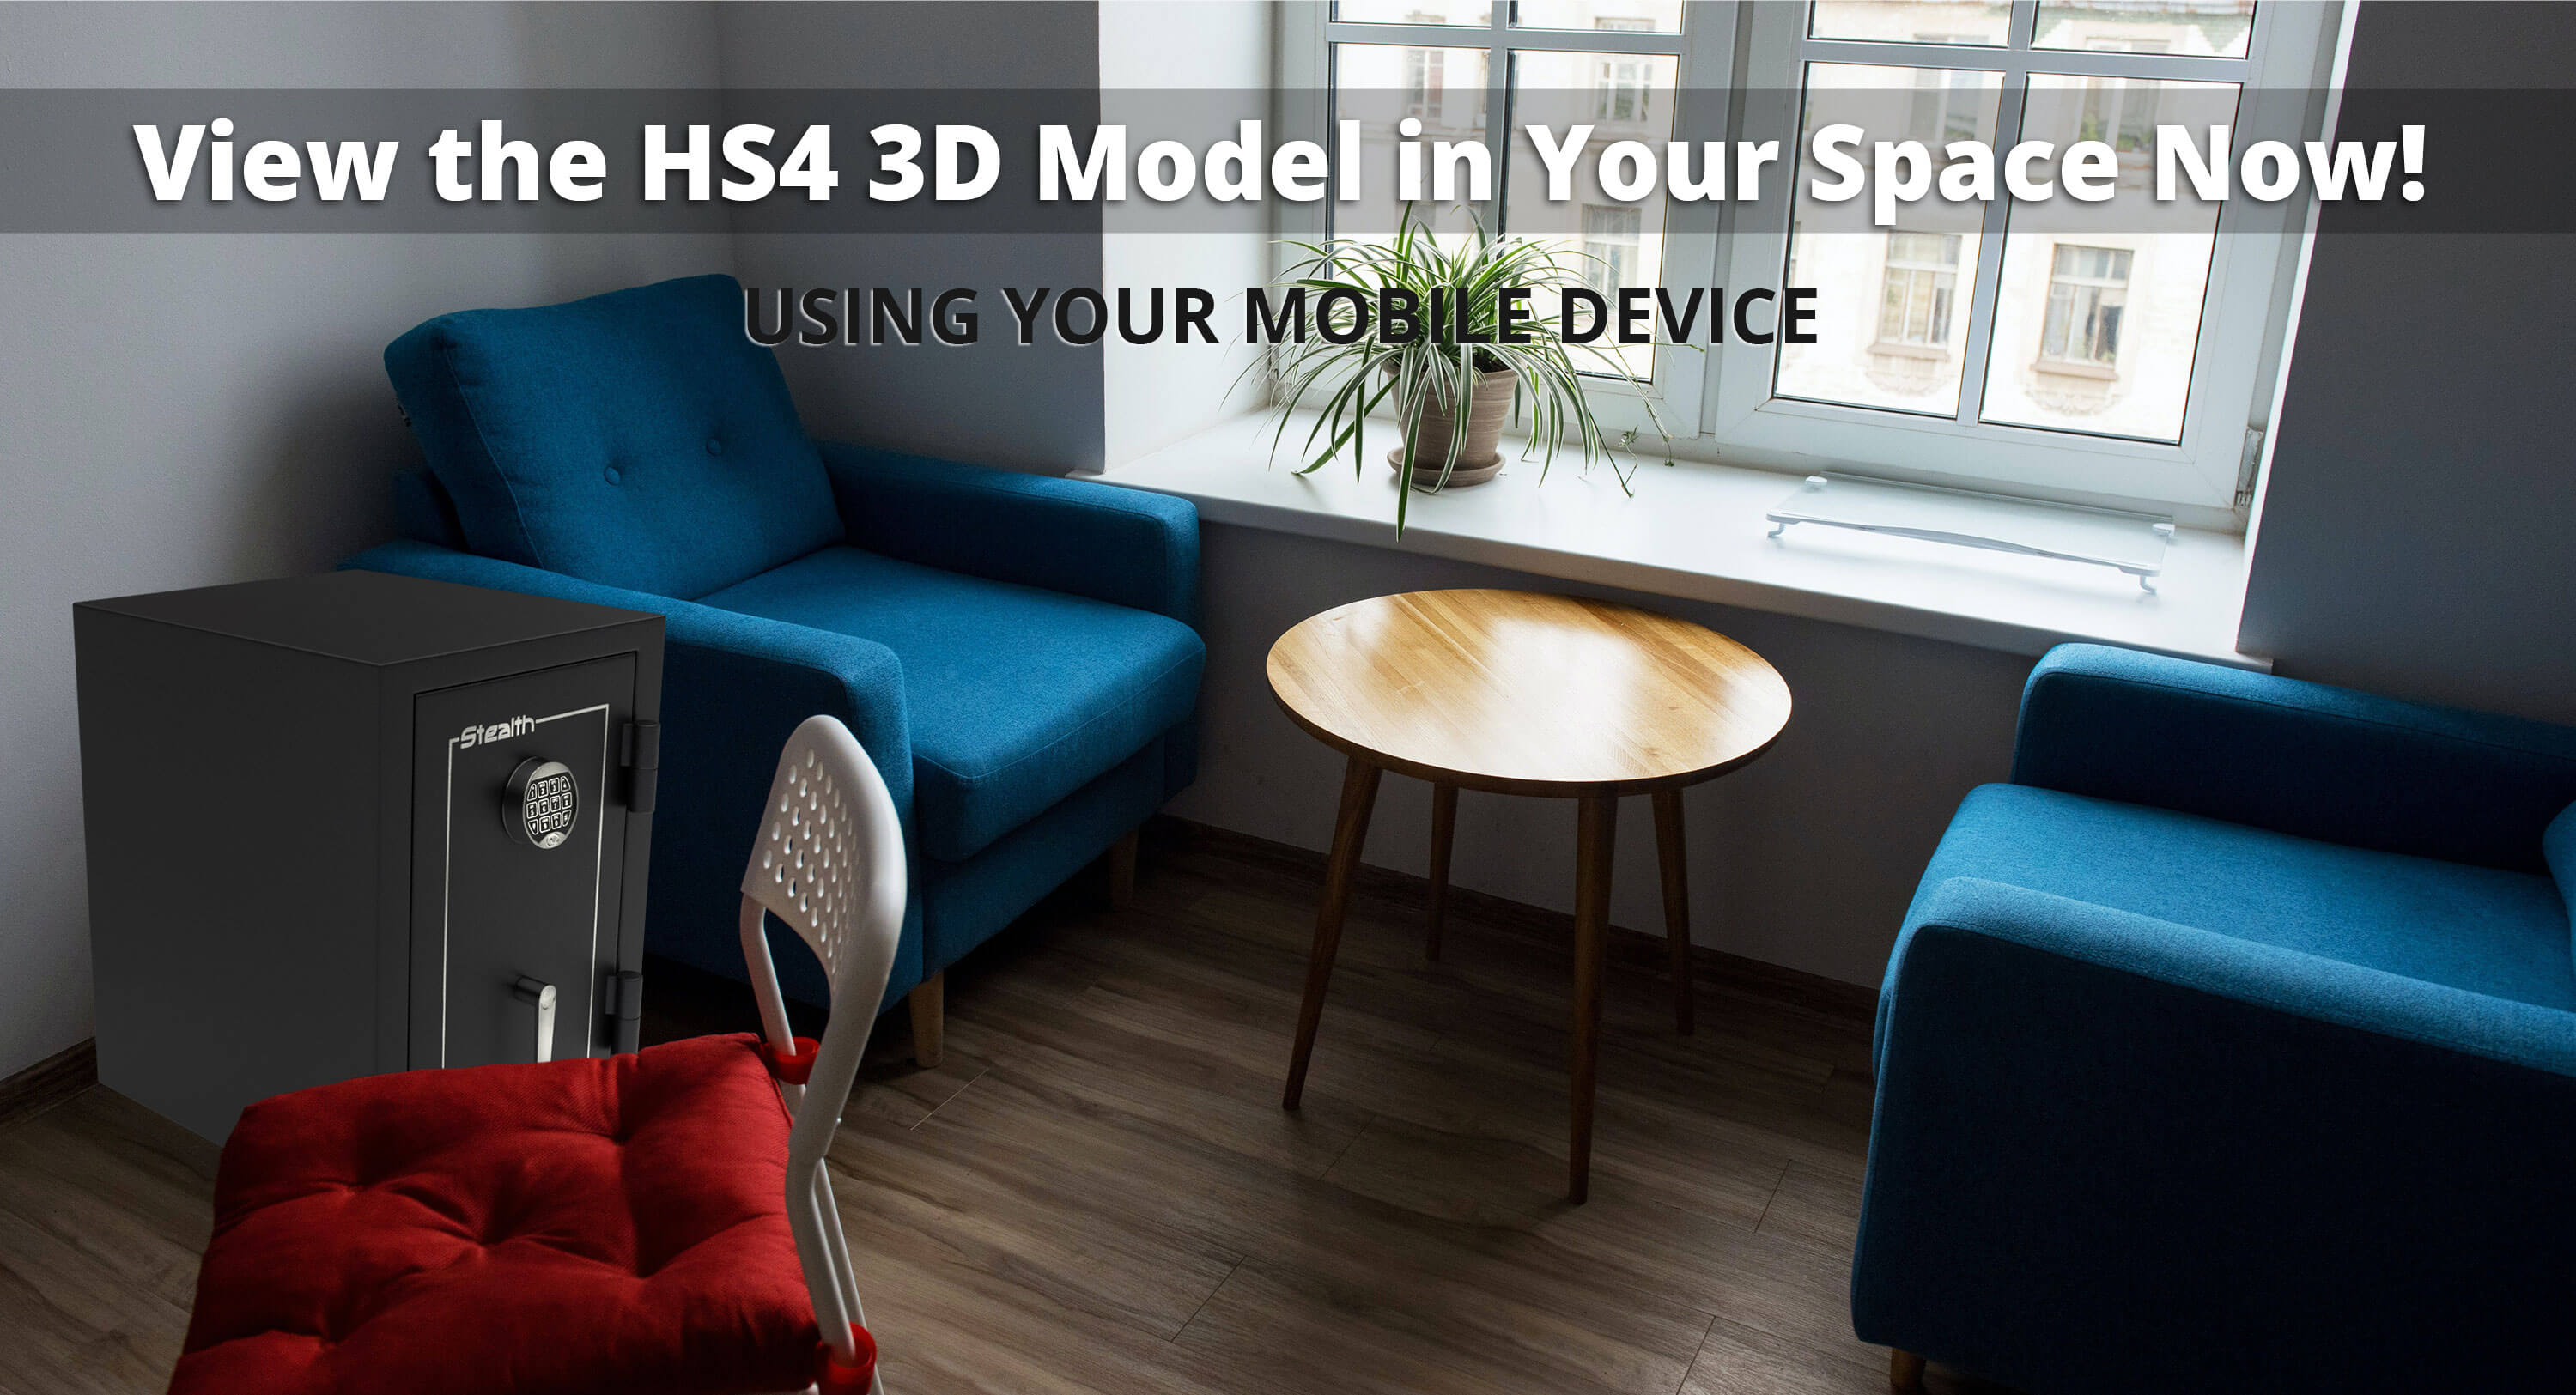 Stealth HS4 UL Home Safe 3D Model and Augmented Reality Experience Available